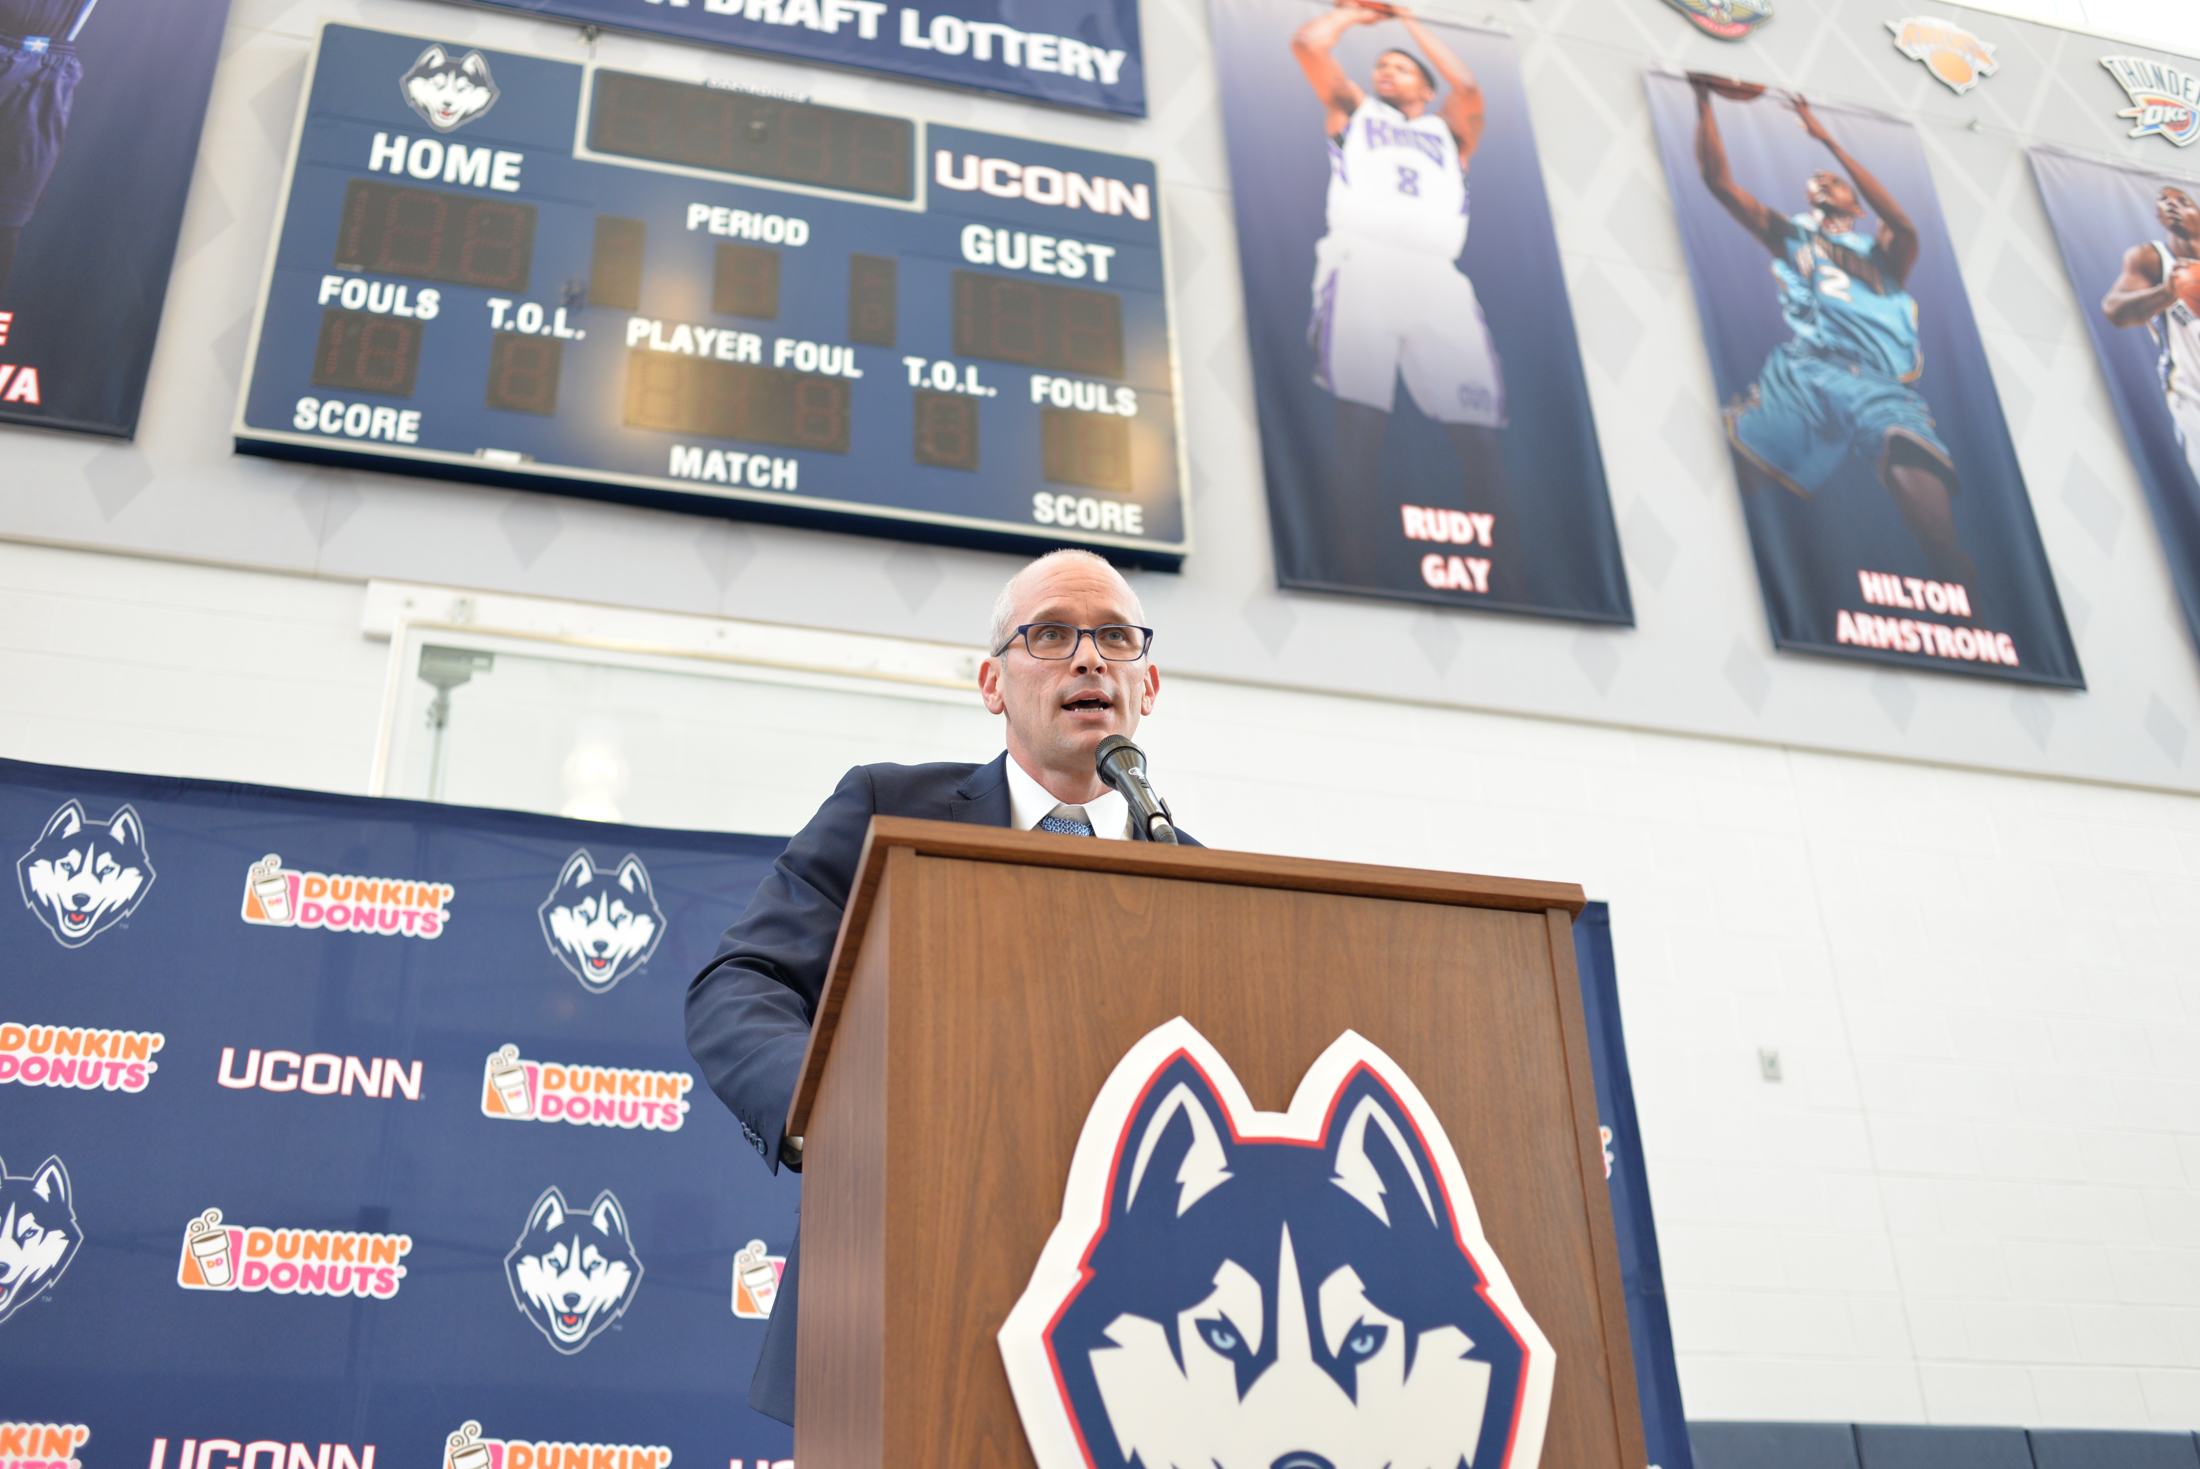 New UConn head coach Dan Hurley speaks at his introductory press conference Friday afternoon at the Werth Family Champions Center. (Amar Batra/The Daily Campus)